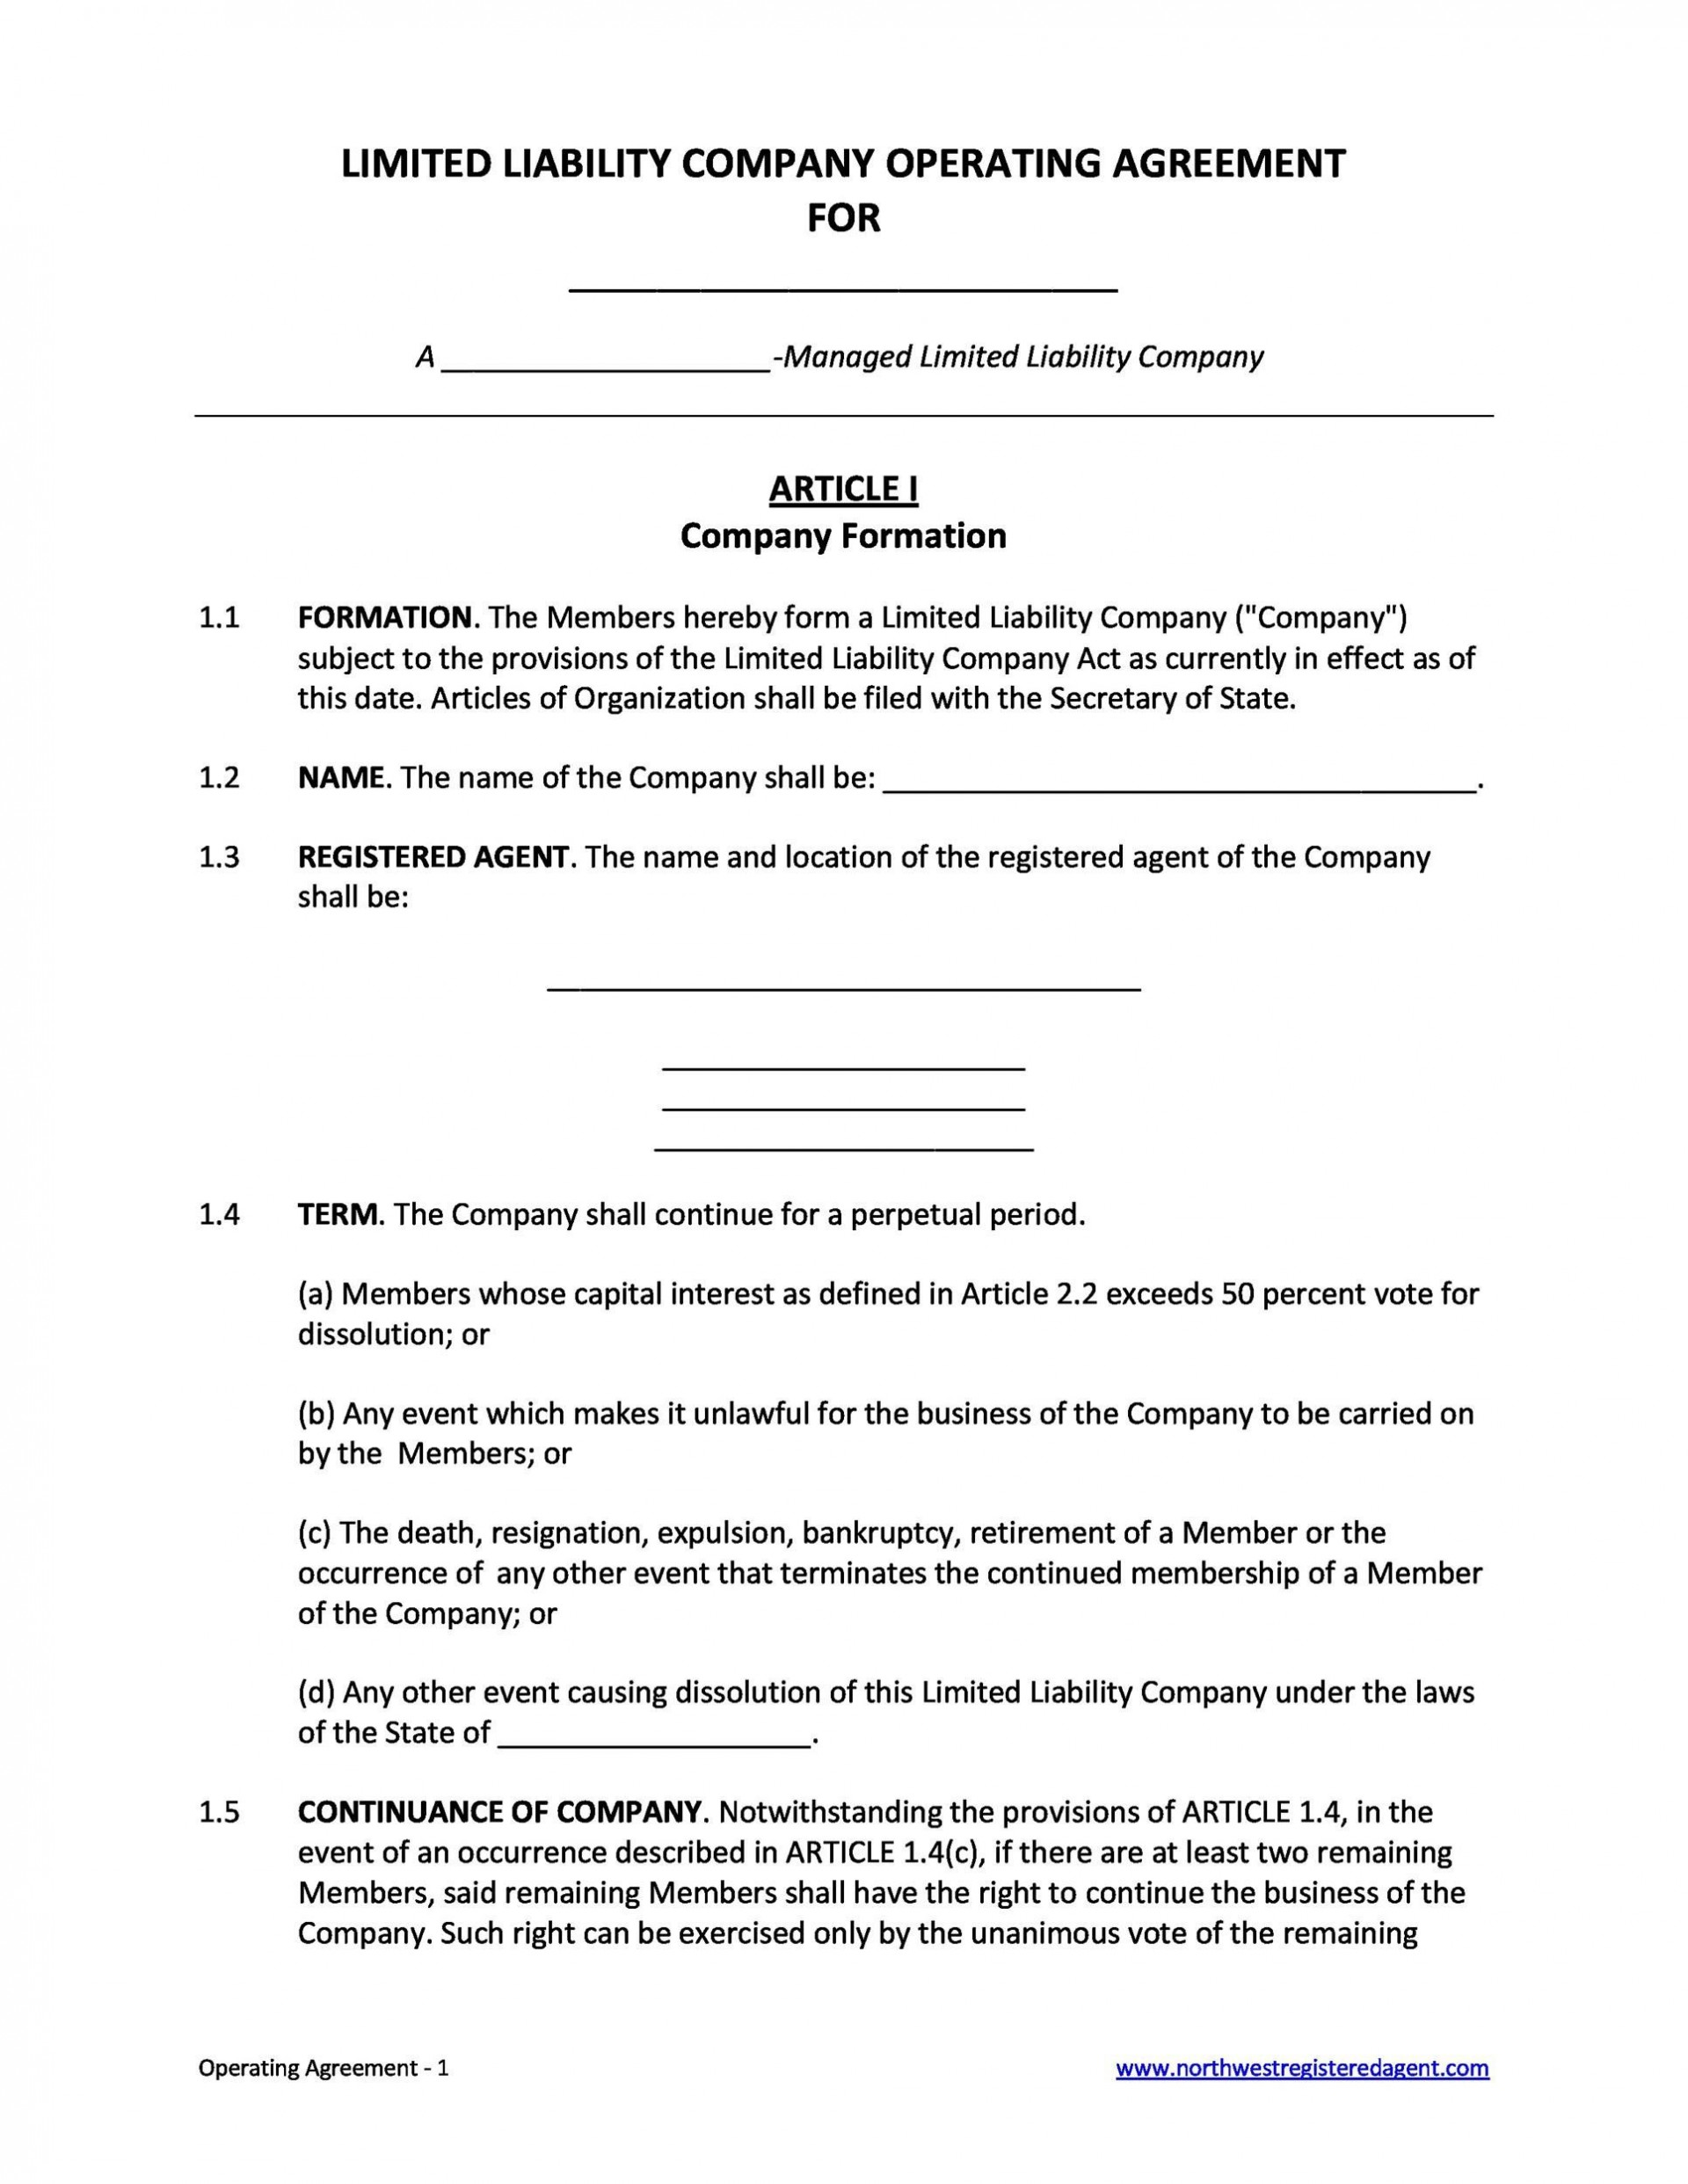 006 Remarkable Operation Agreement Llc Template Concept  Operating Florida Indiana Single Member California1920